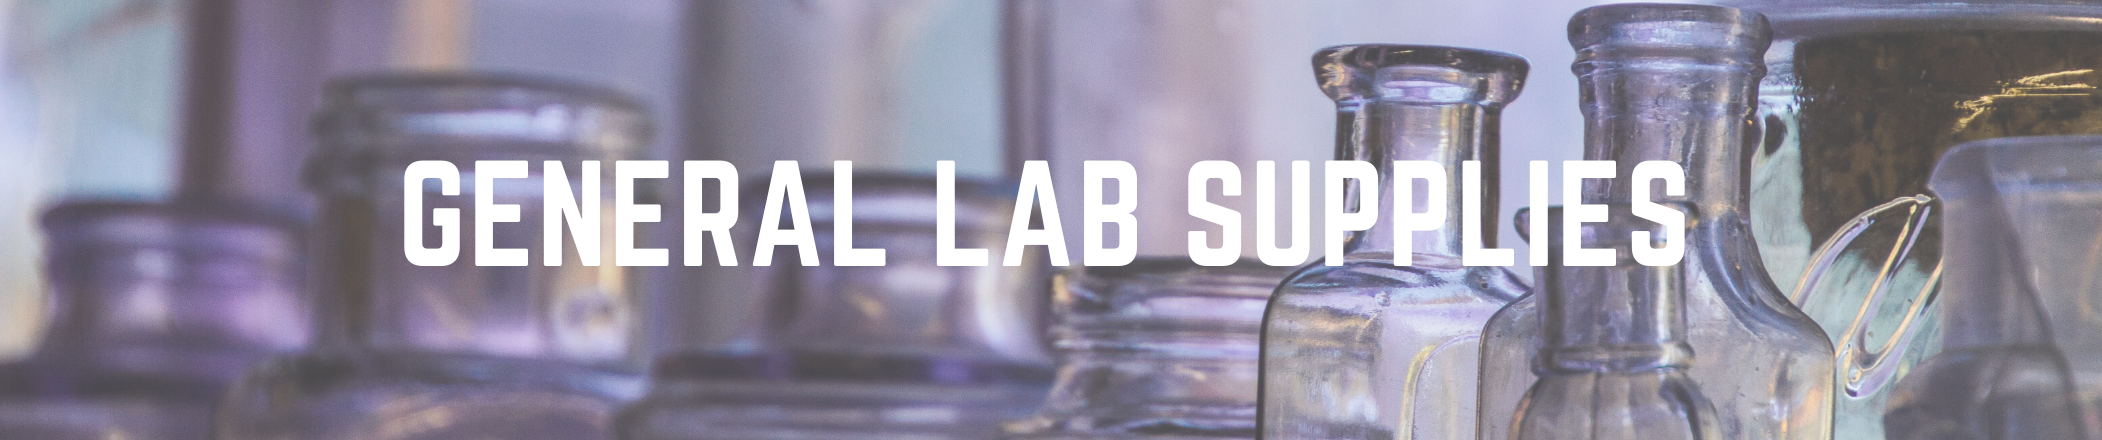 General Lab Supplies text with image background